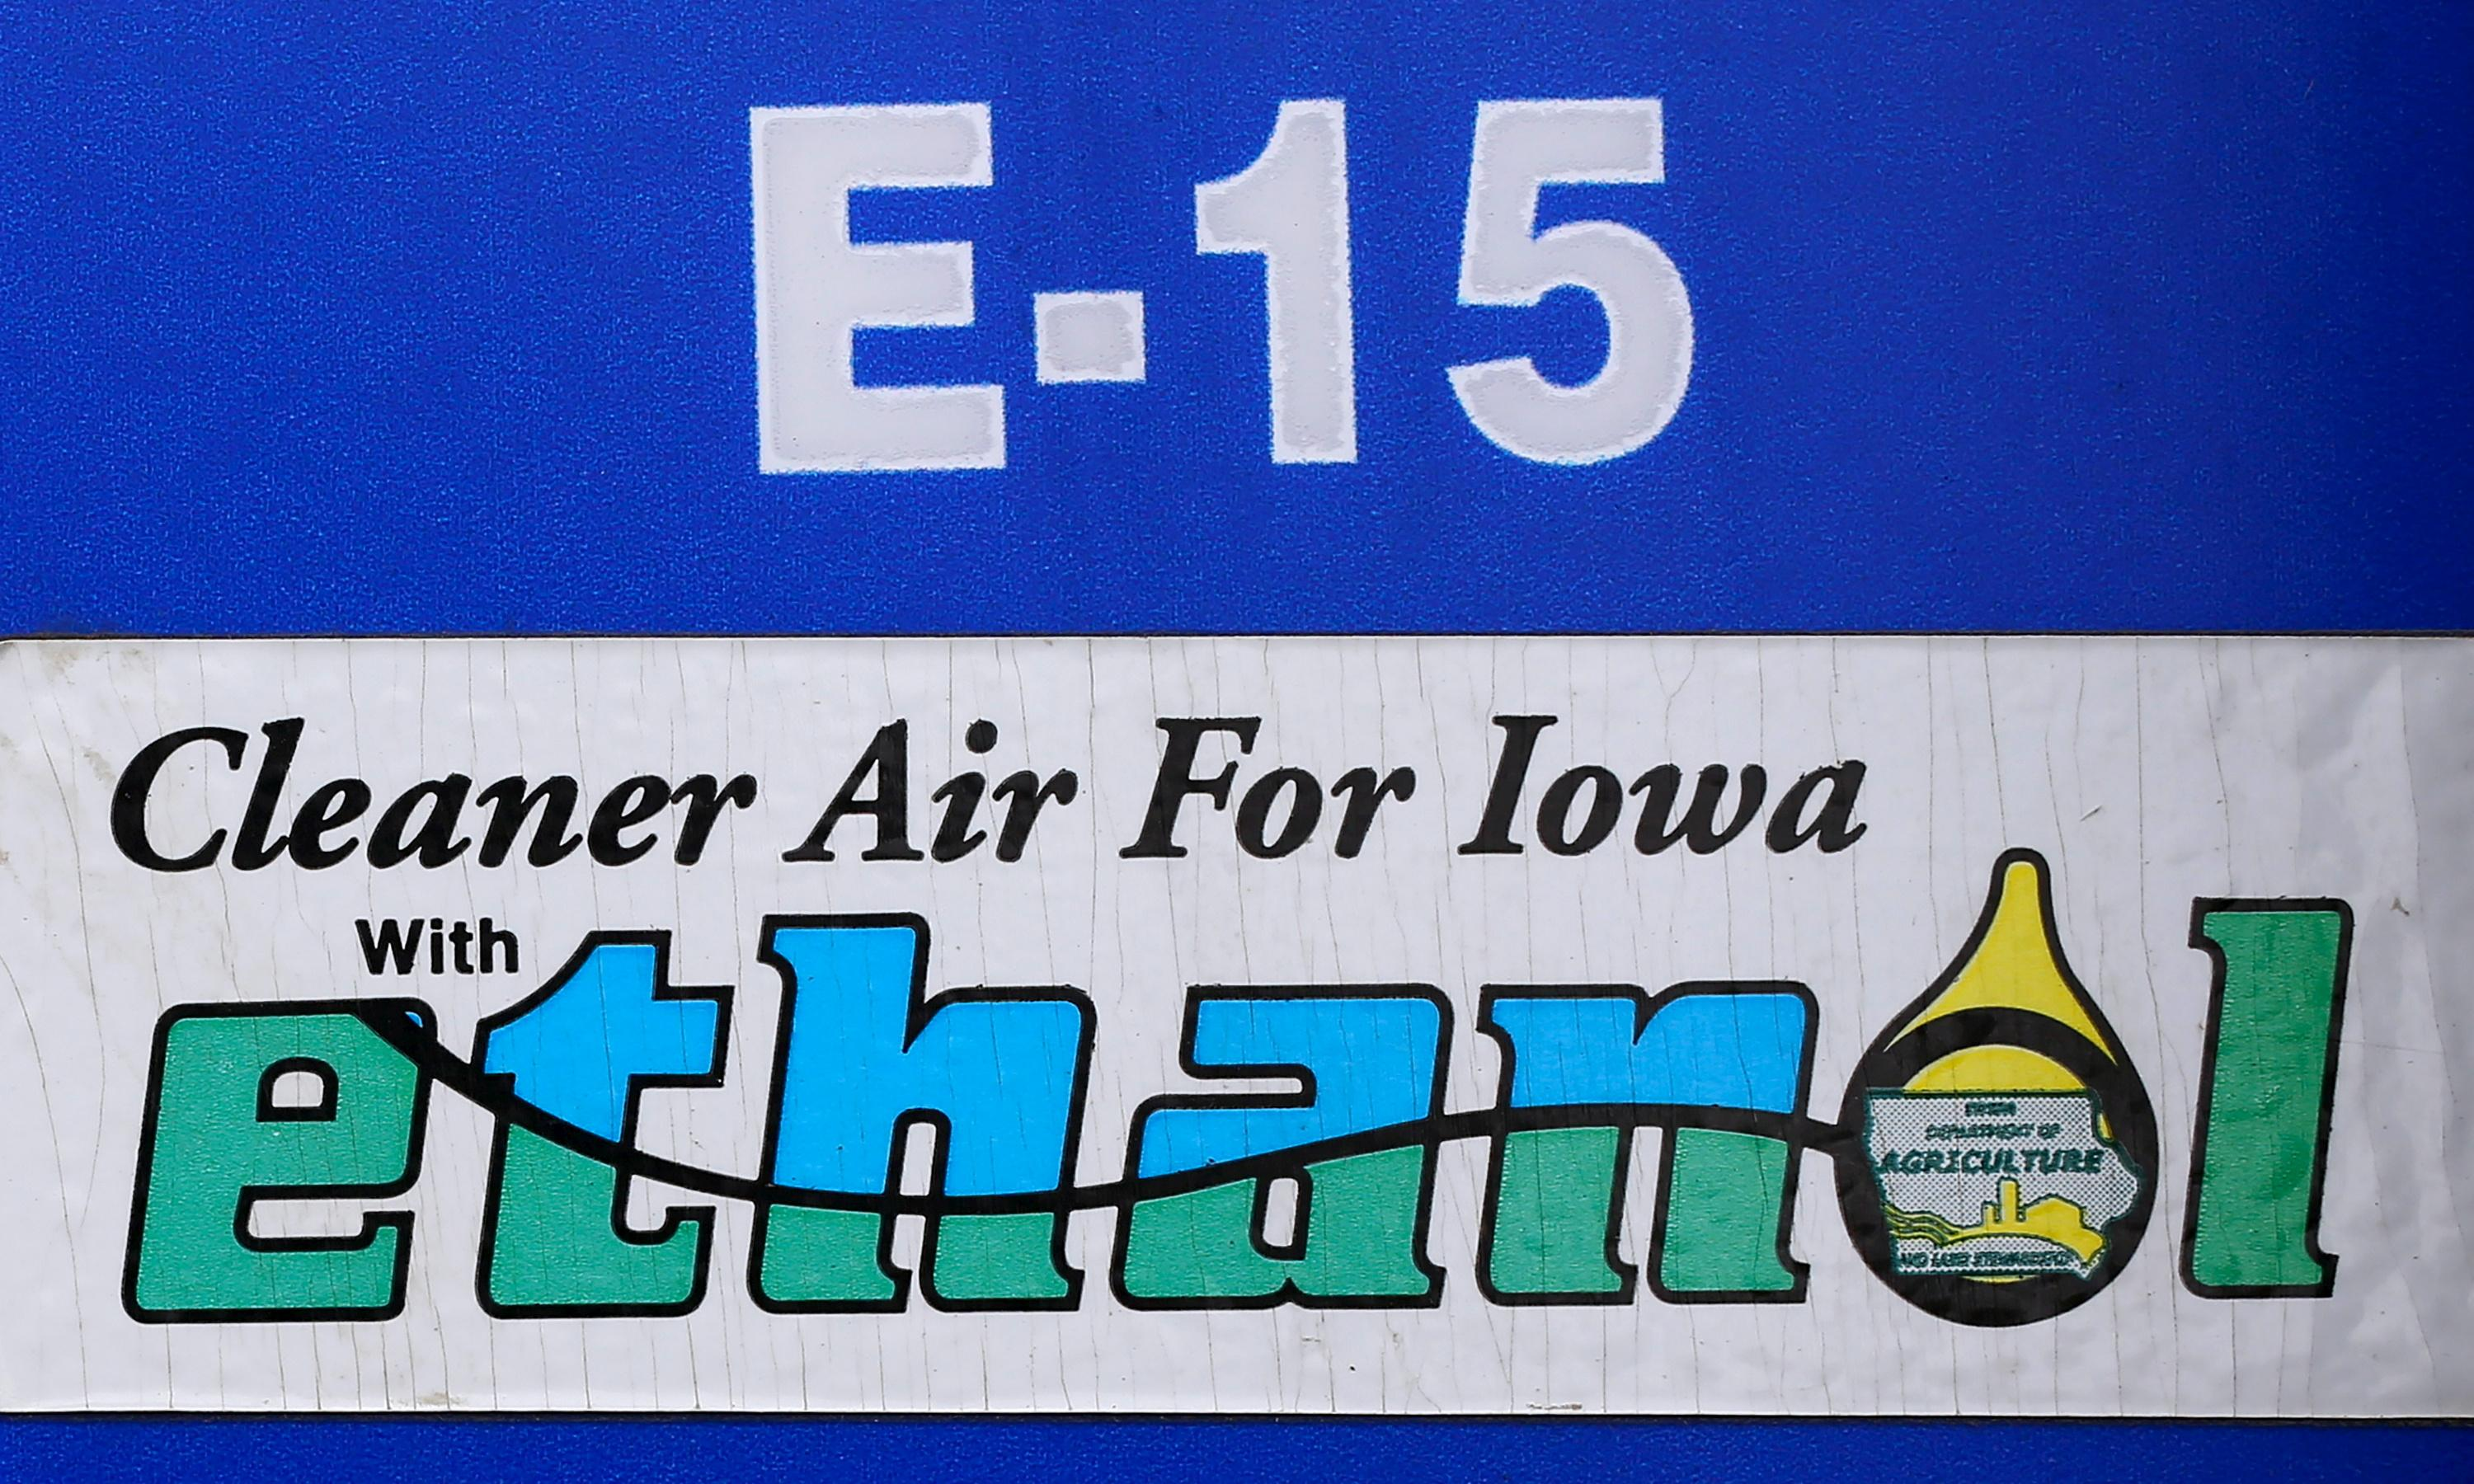 Iowa operatives say ethanol worship is now as corny as The West Wing